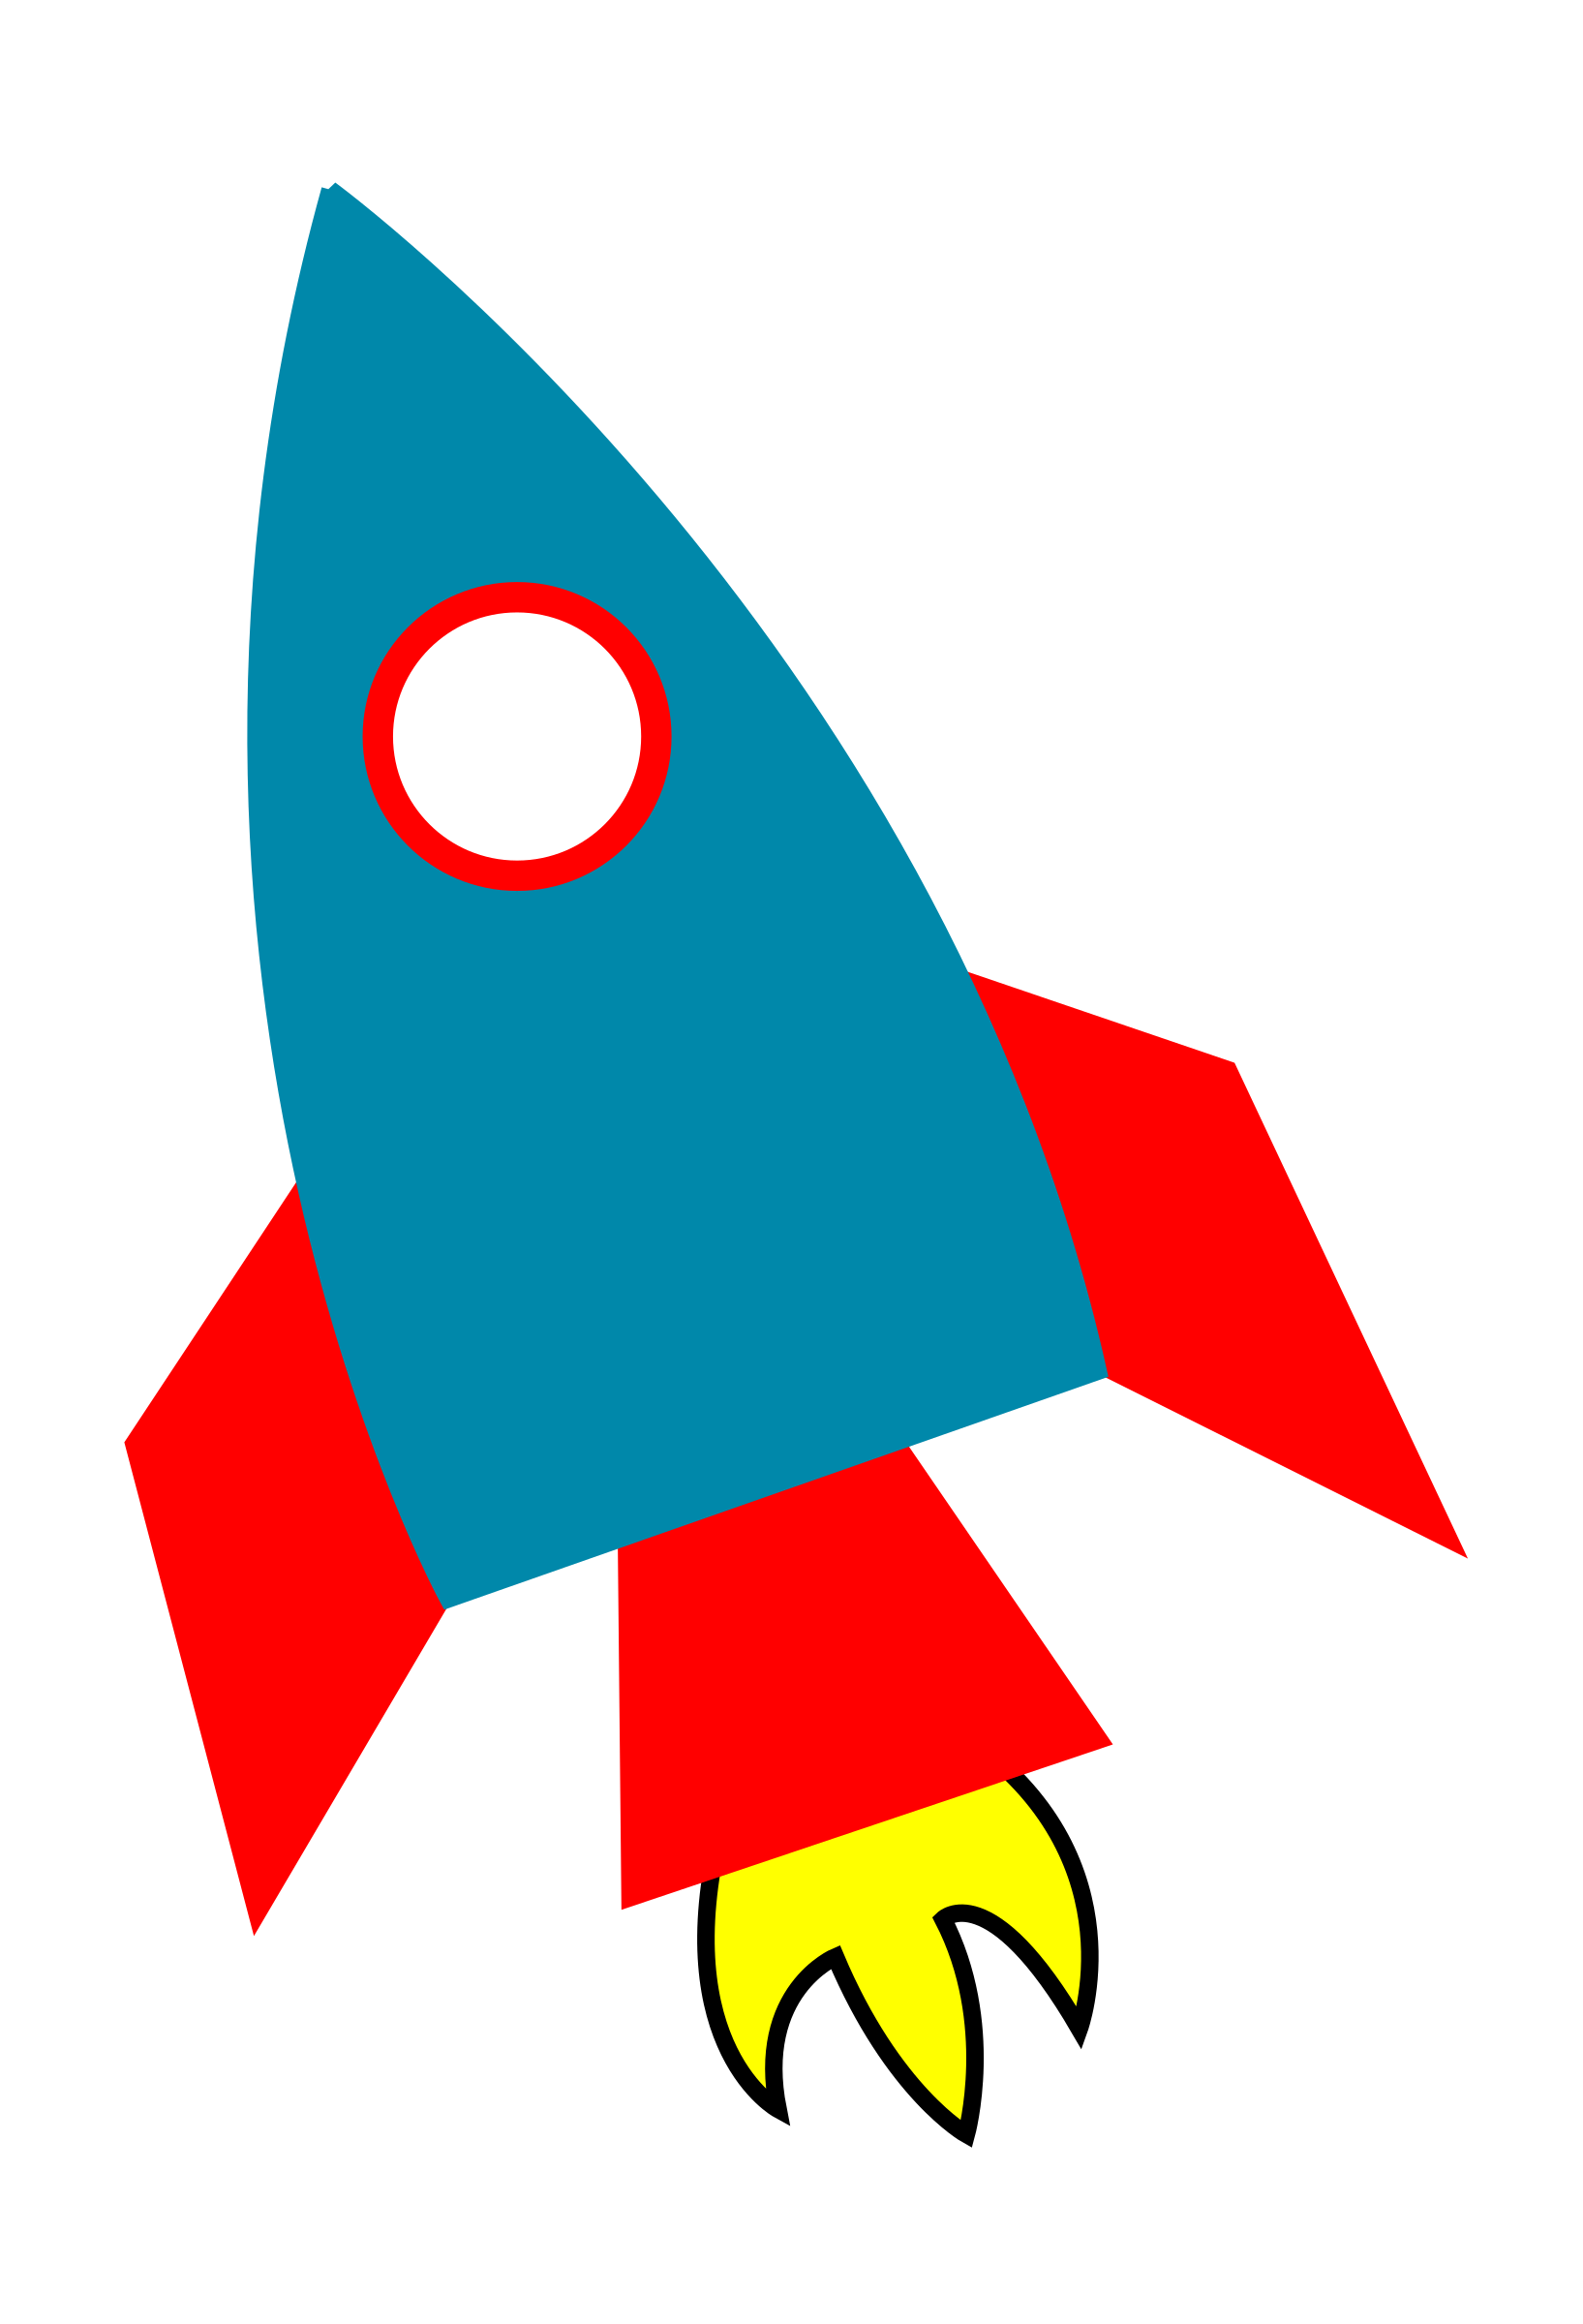 collection of space. Clipart rocket simple rocket